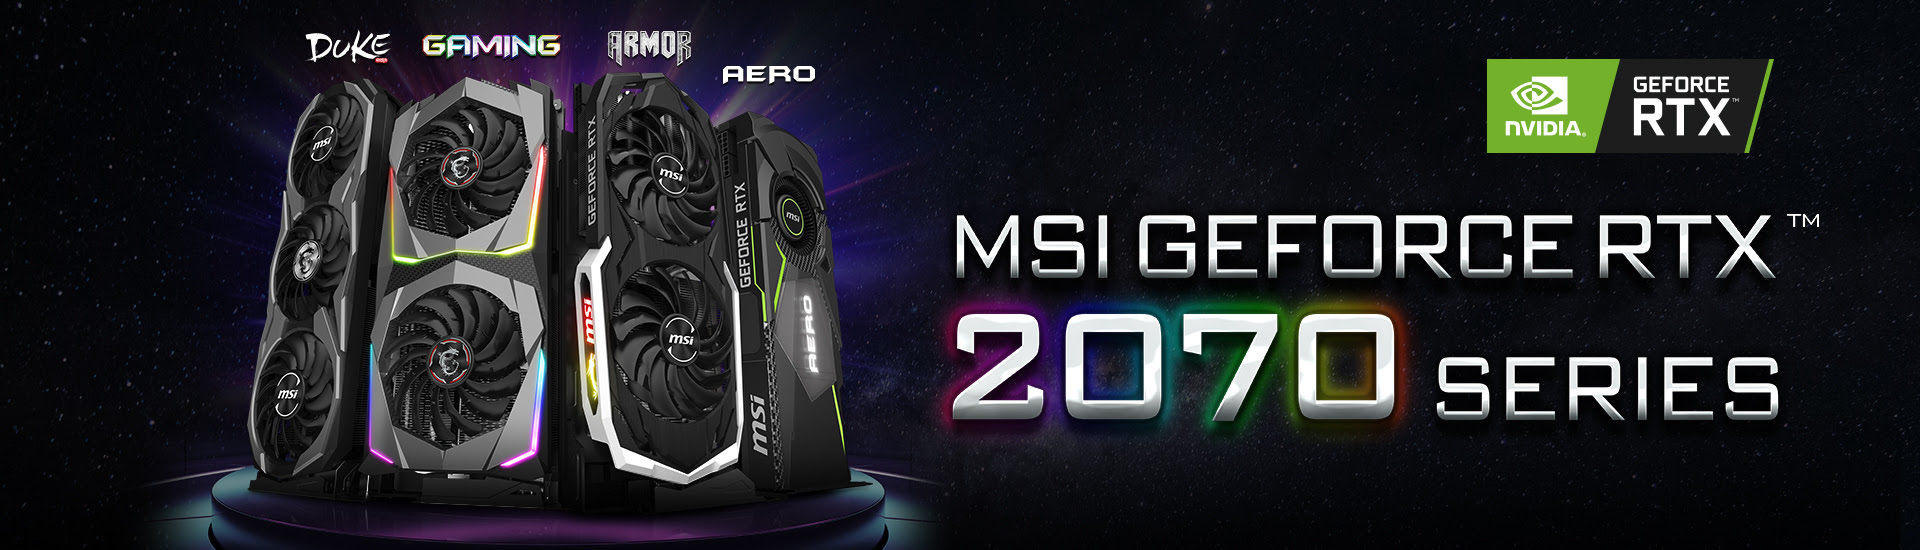 MSI Announces Custom GeForce RTX 2070 Graphics Cards - Legit